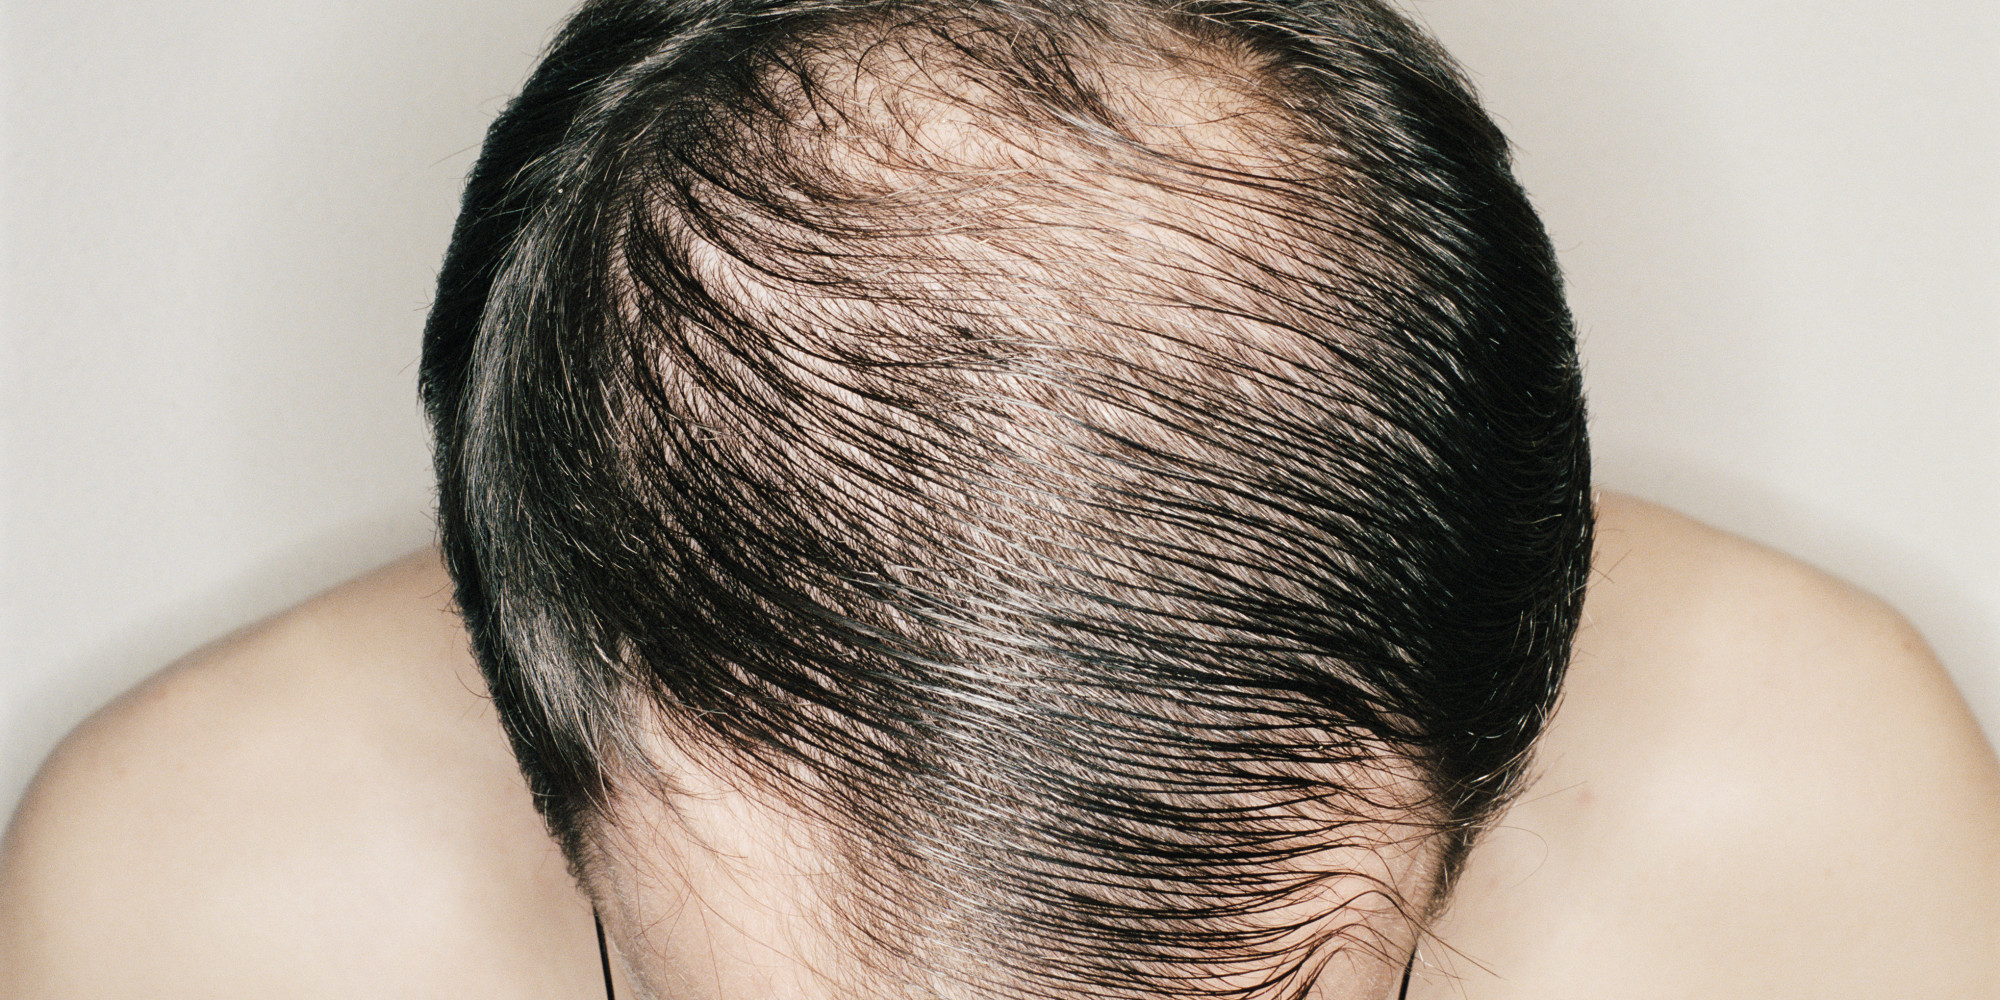 hair-loss-men04